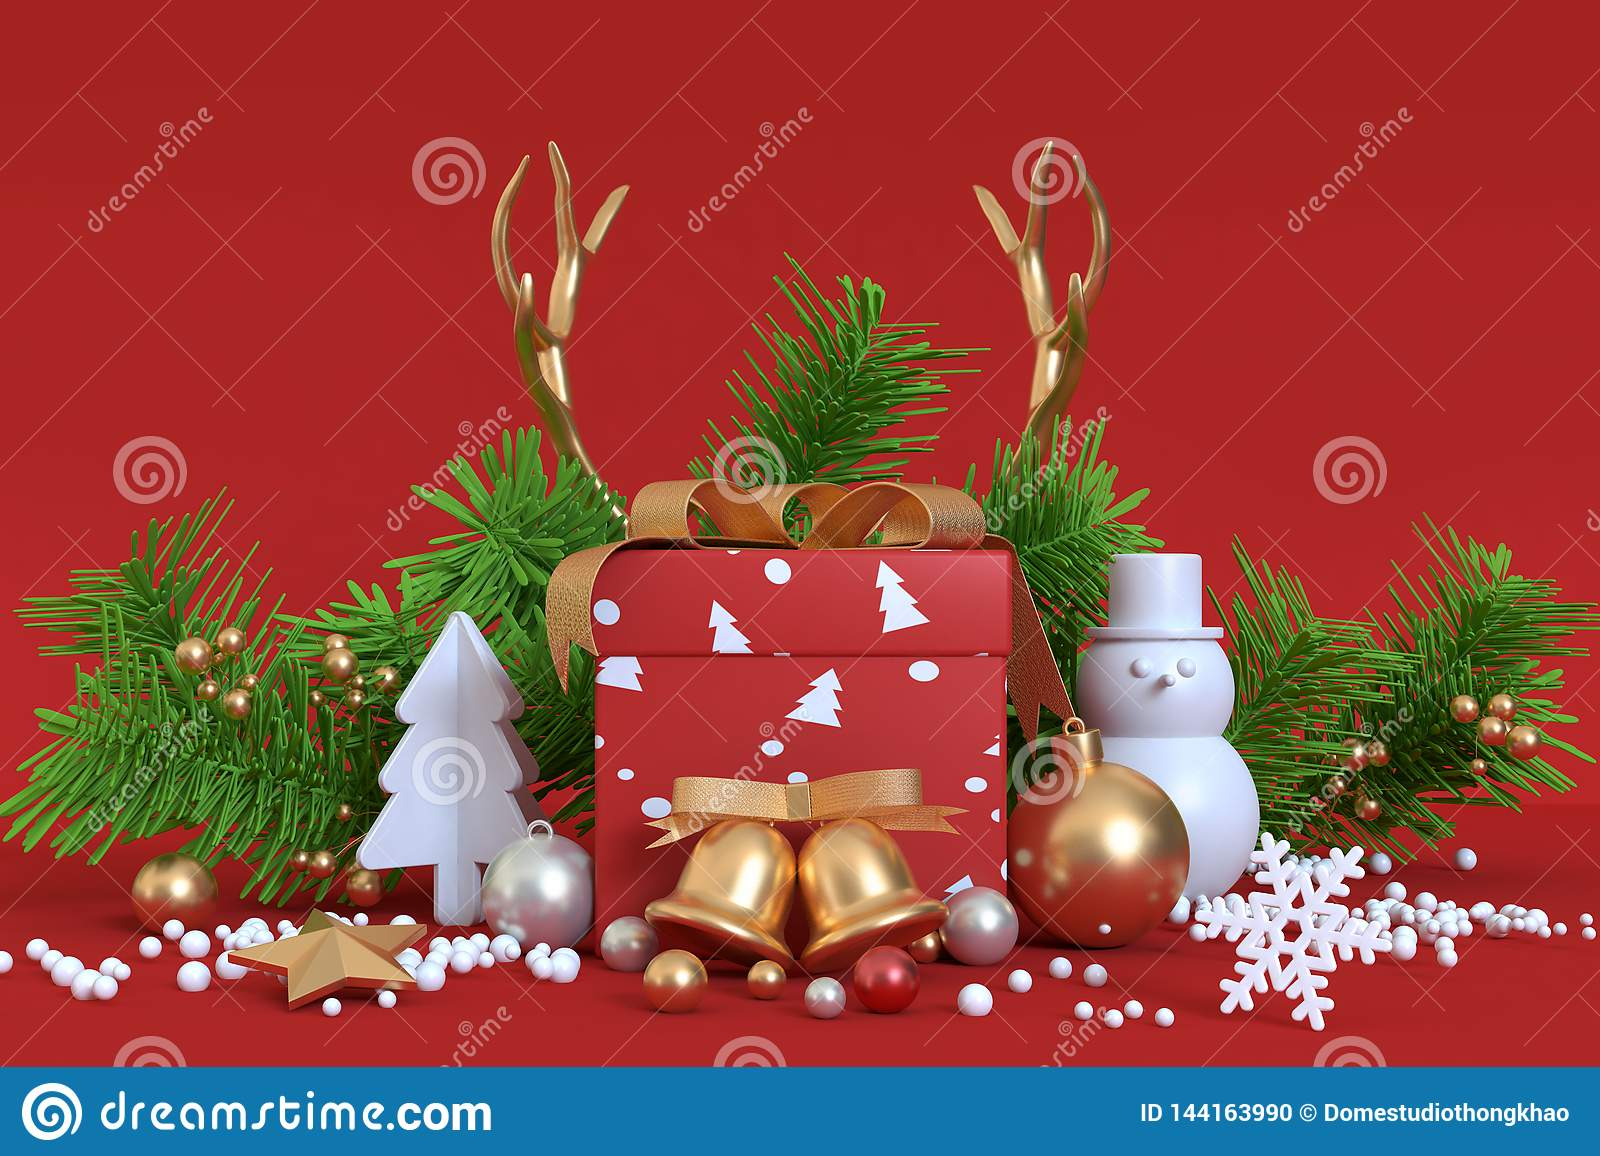 abstract object christmas decoration-christmas background gift box